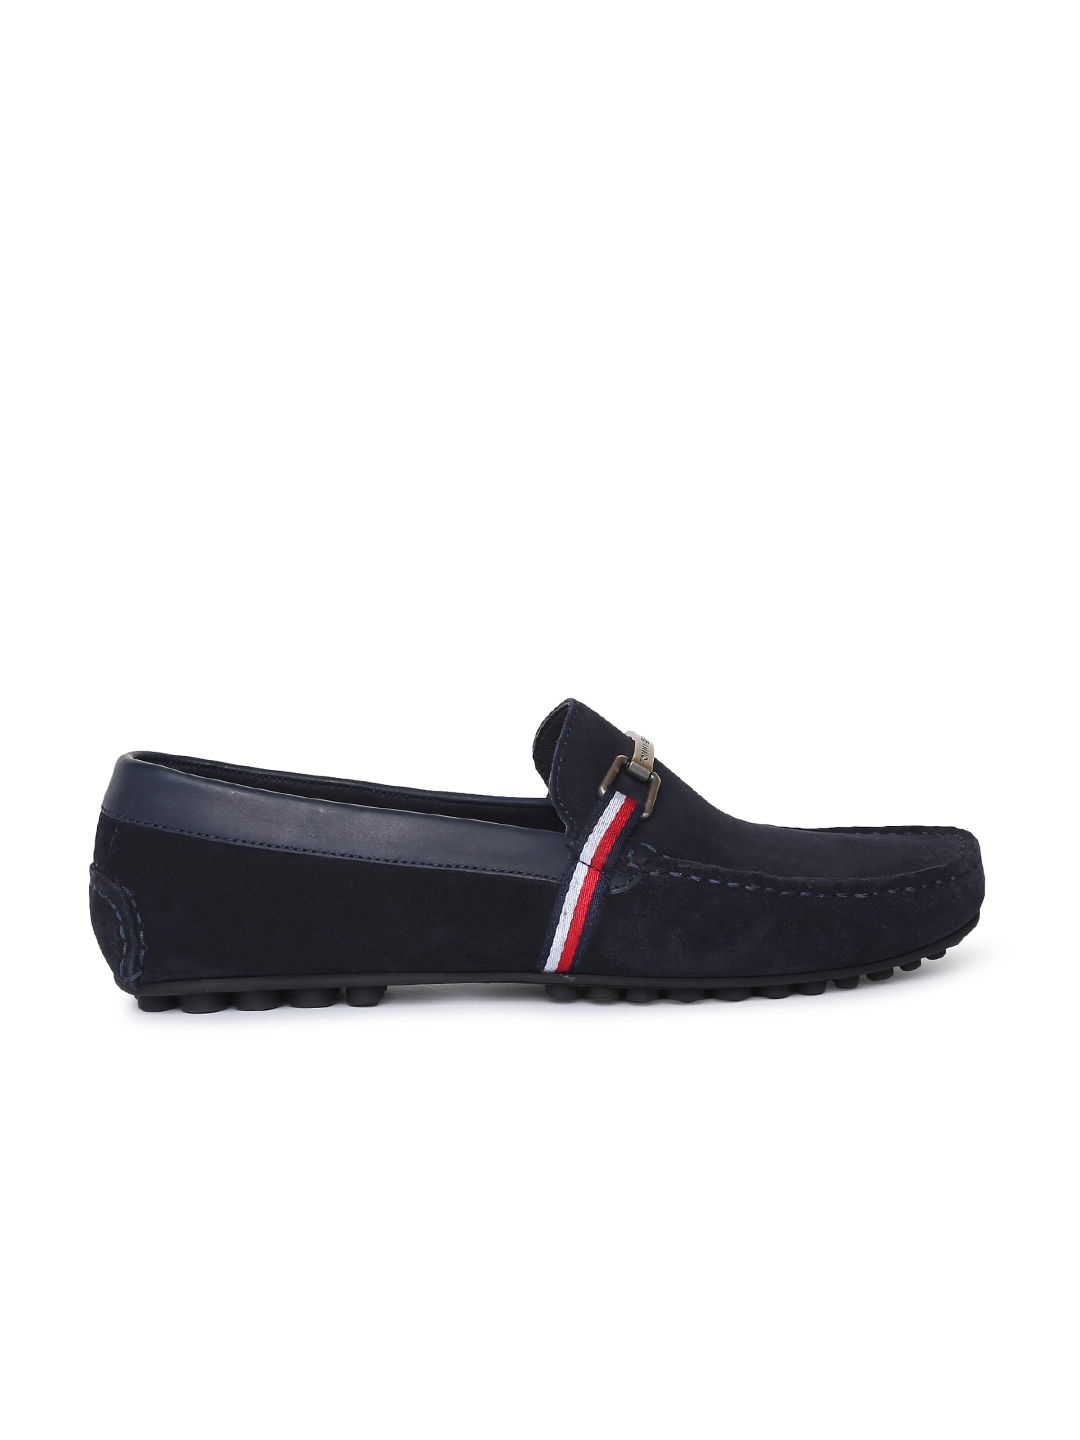 e11f1049b745 Buy Tommy Hilfiger Men Navy Blue Loafers - Casual Shoes for Men ...